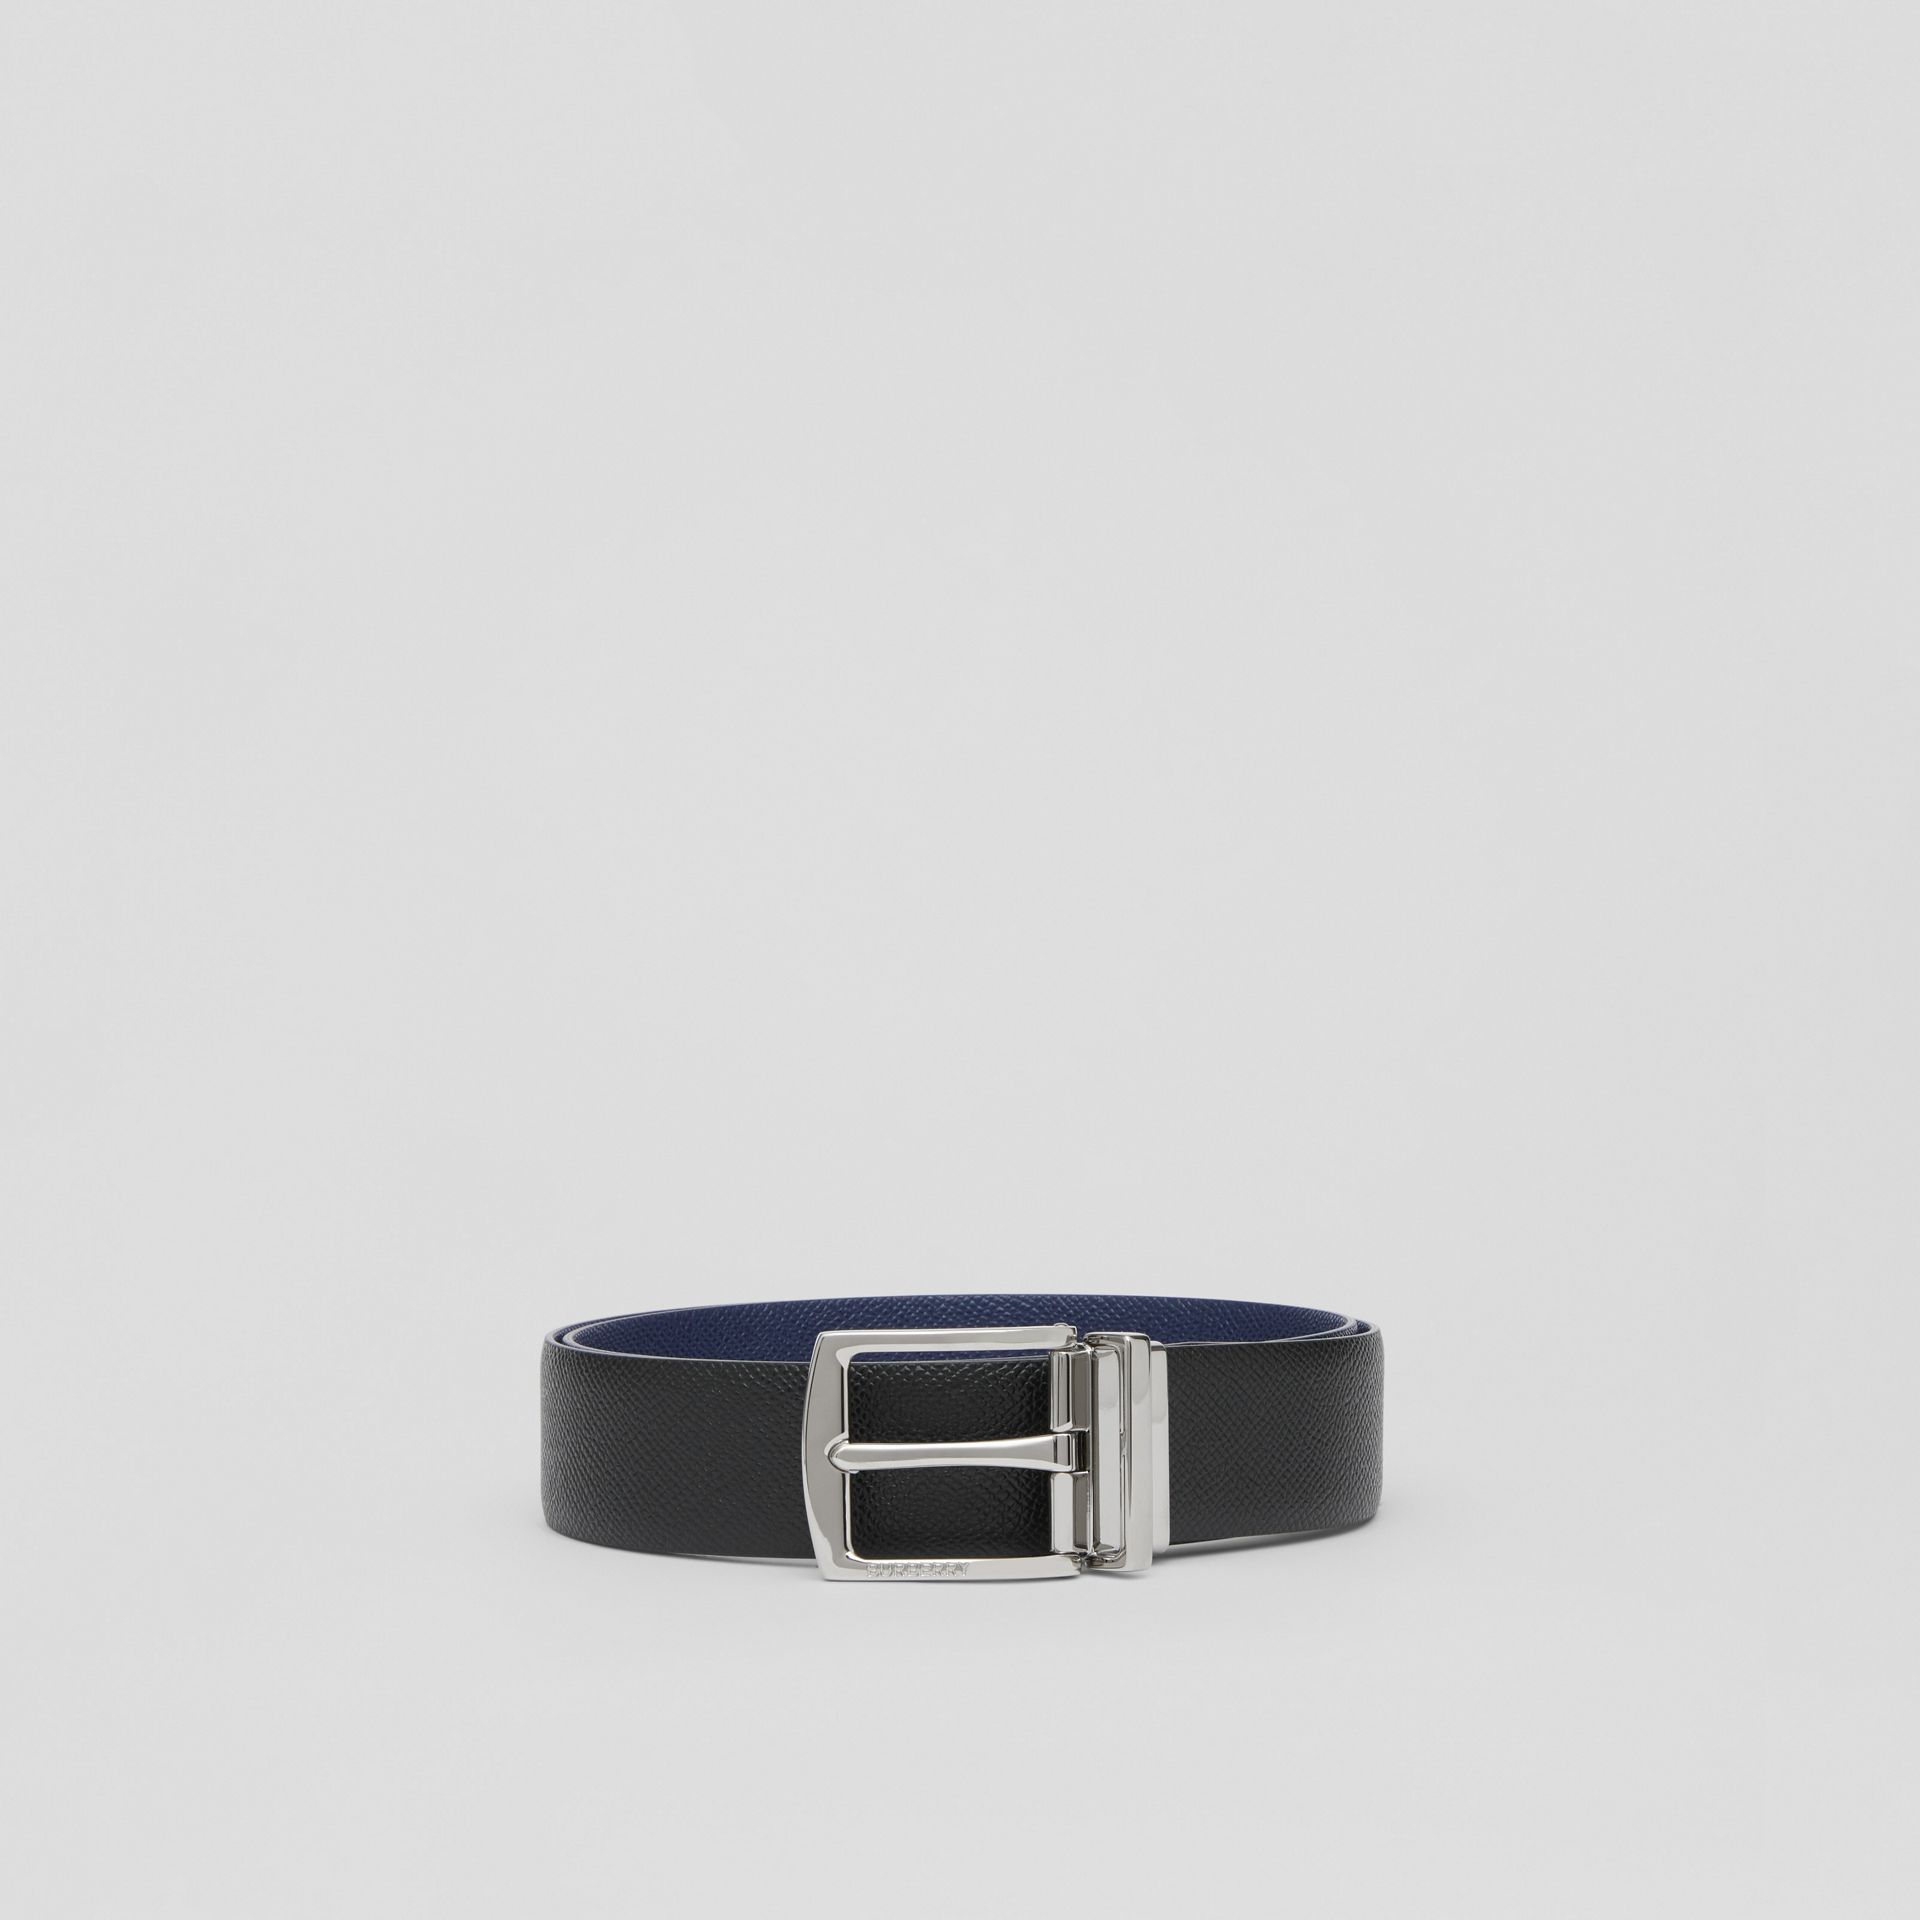 Reversible Grainy Leather Belt in Black/navy - Men | Burberry Canada - gallery image 3